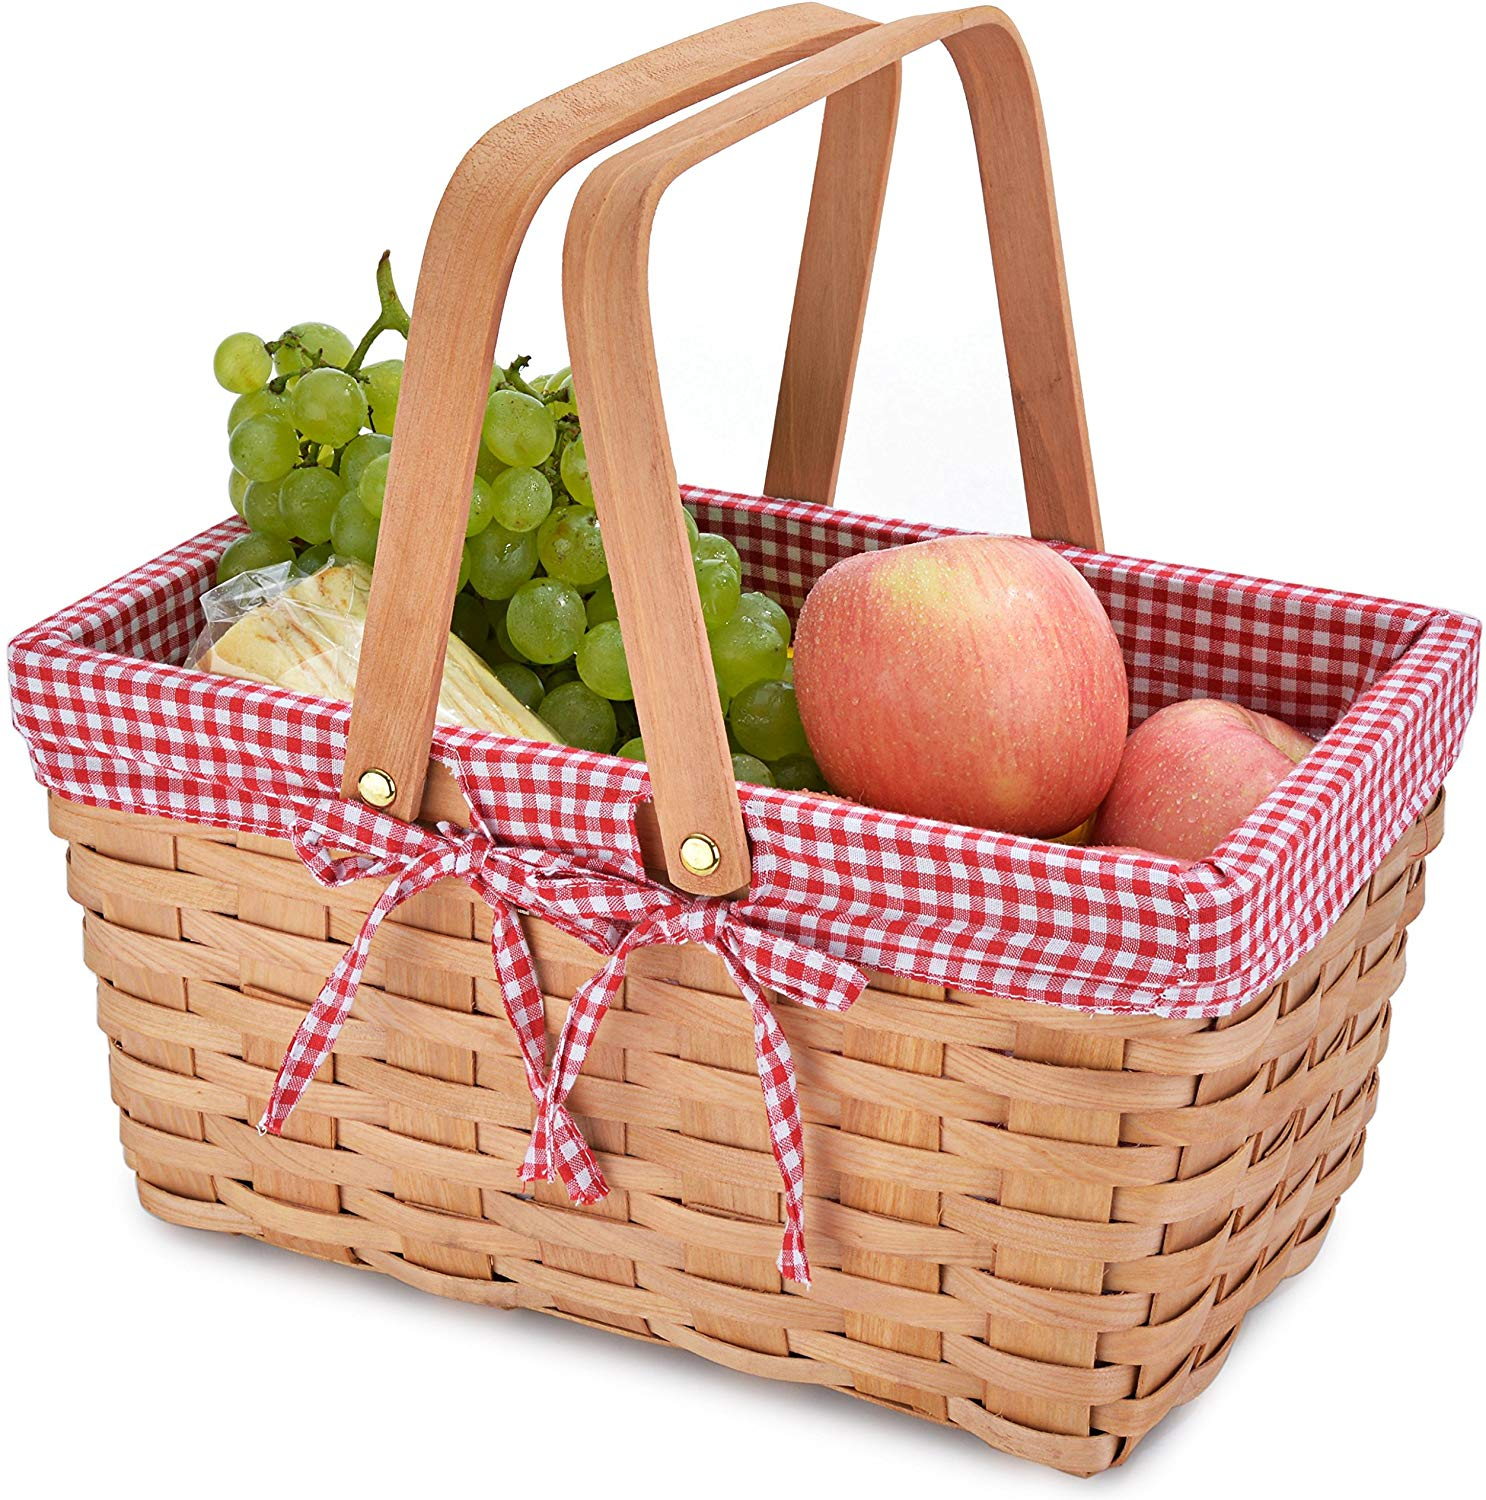 Picnic Basket Natural Woven Woodchip with Double Folding Handles